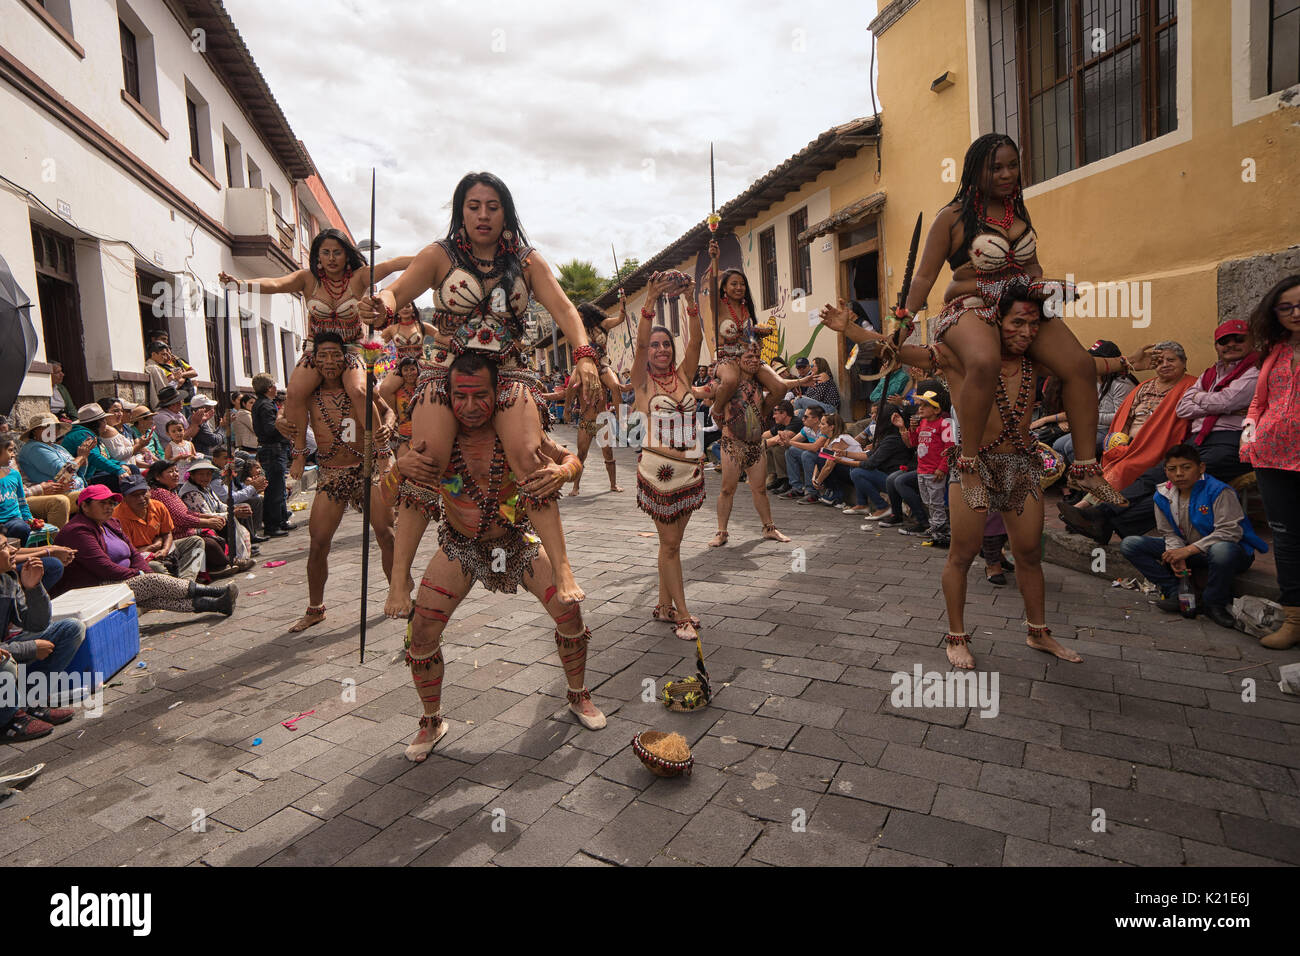 June 17, 2017 Pujili, Ecuador: indigenous dancers from the Amazonas area performing at the Corpus Christi festival - Stock Image